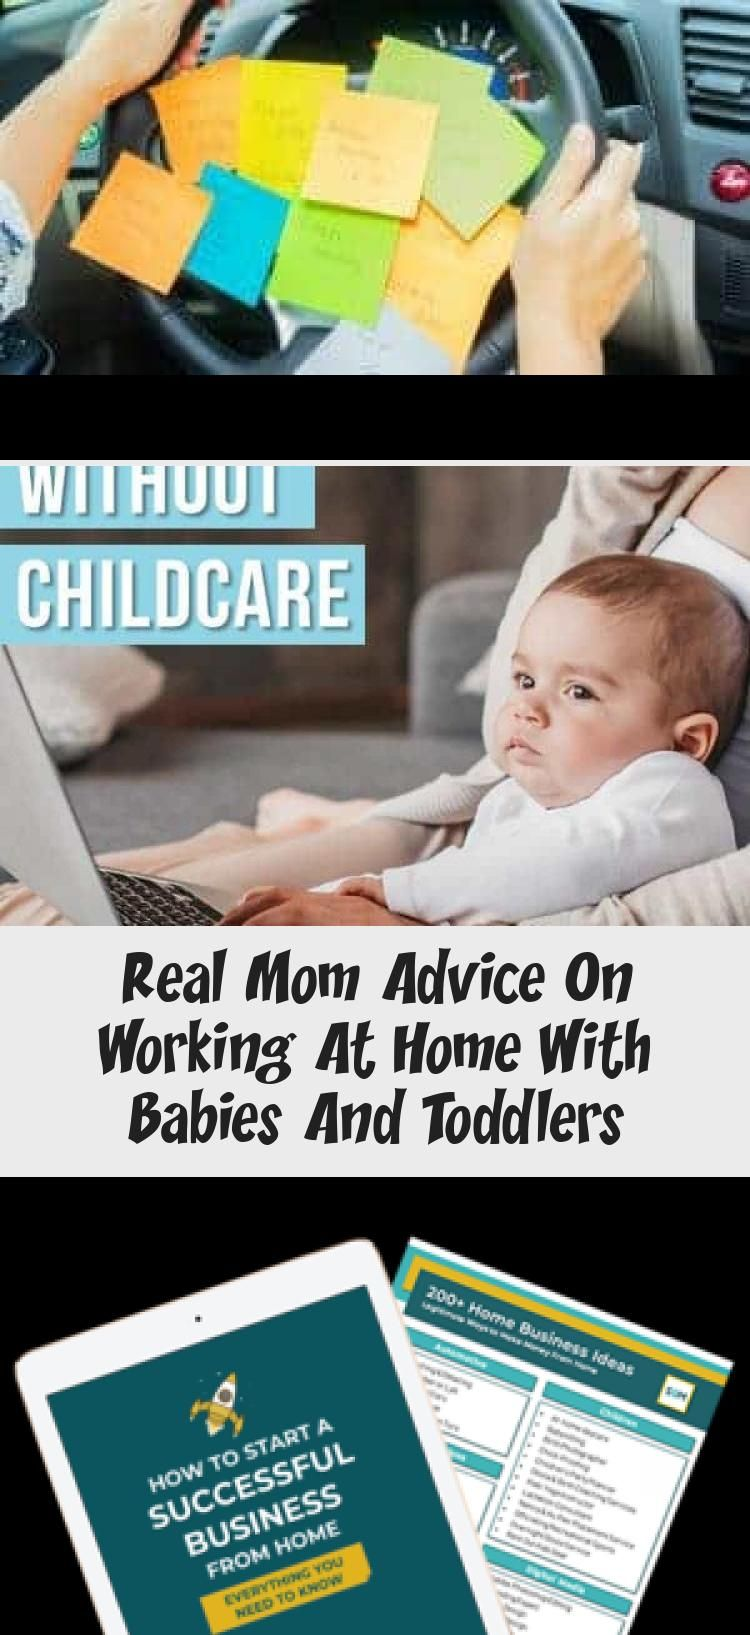 Real Mom Advice On Working At Home With Babies And Toddlers